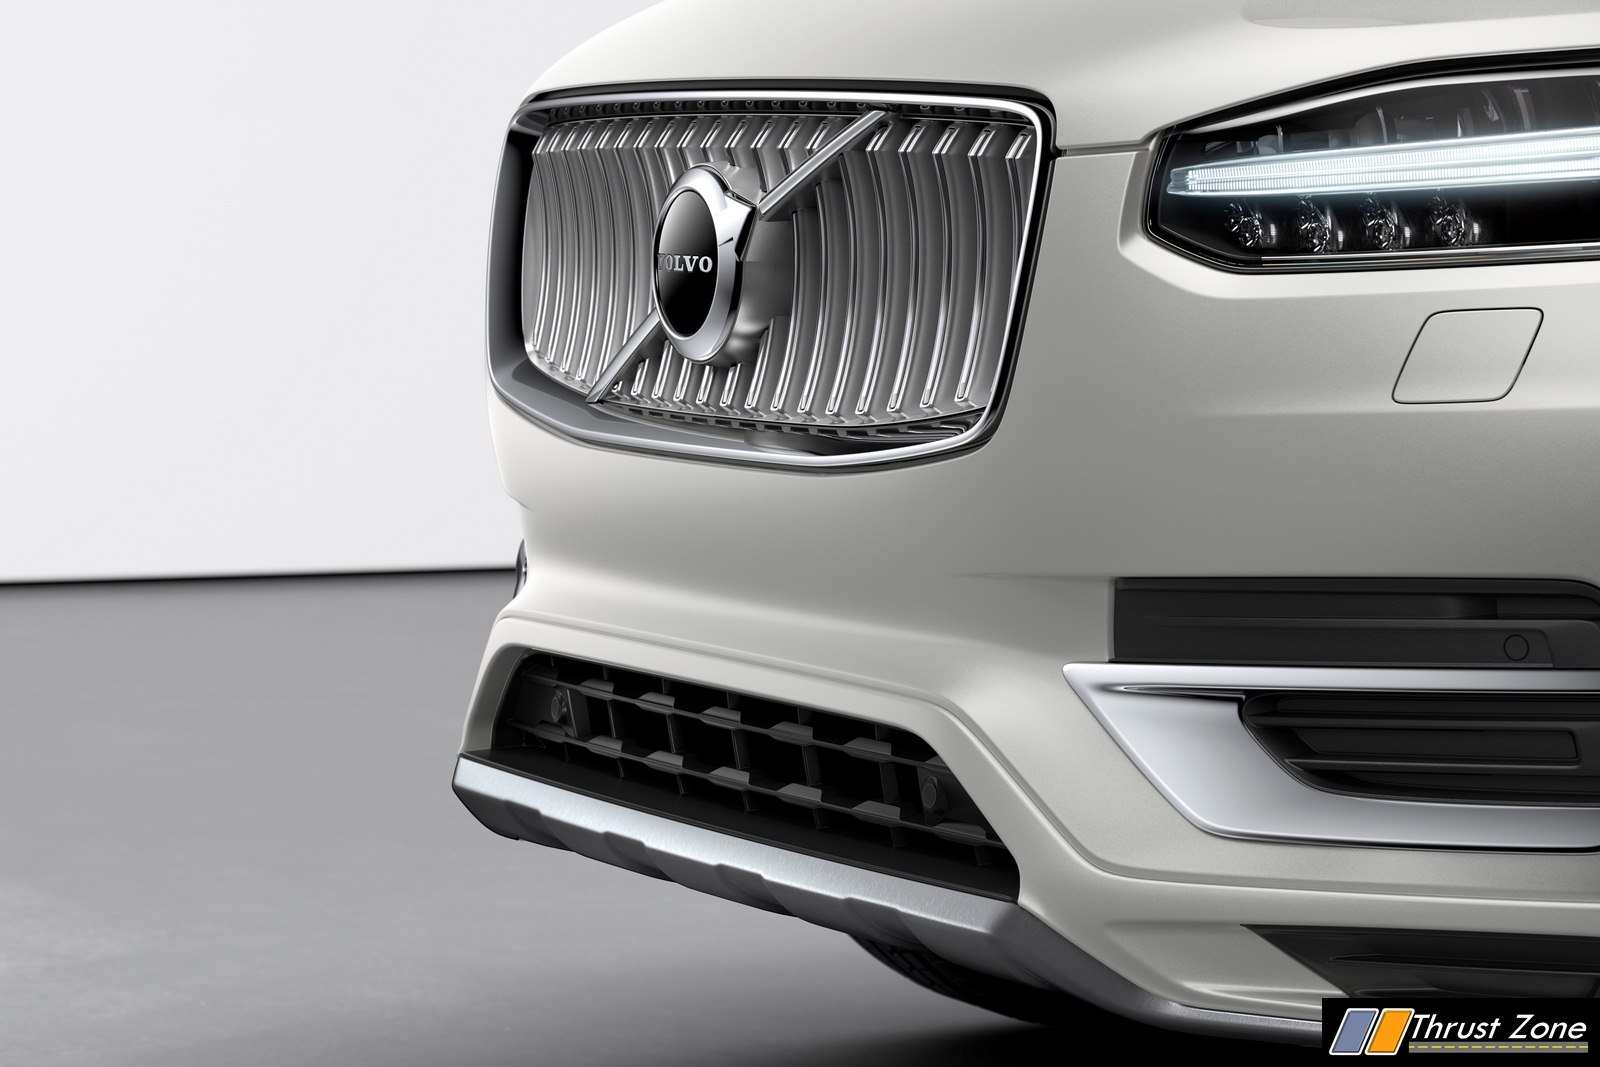 73 Concept of All New Volvo Xc90 2020 History with All New Volvo Xc90 2020